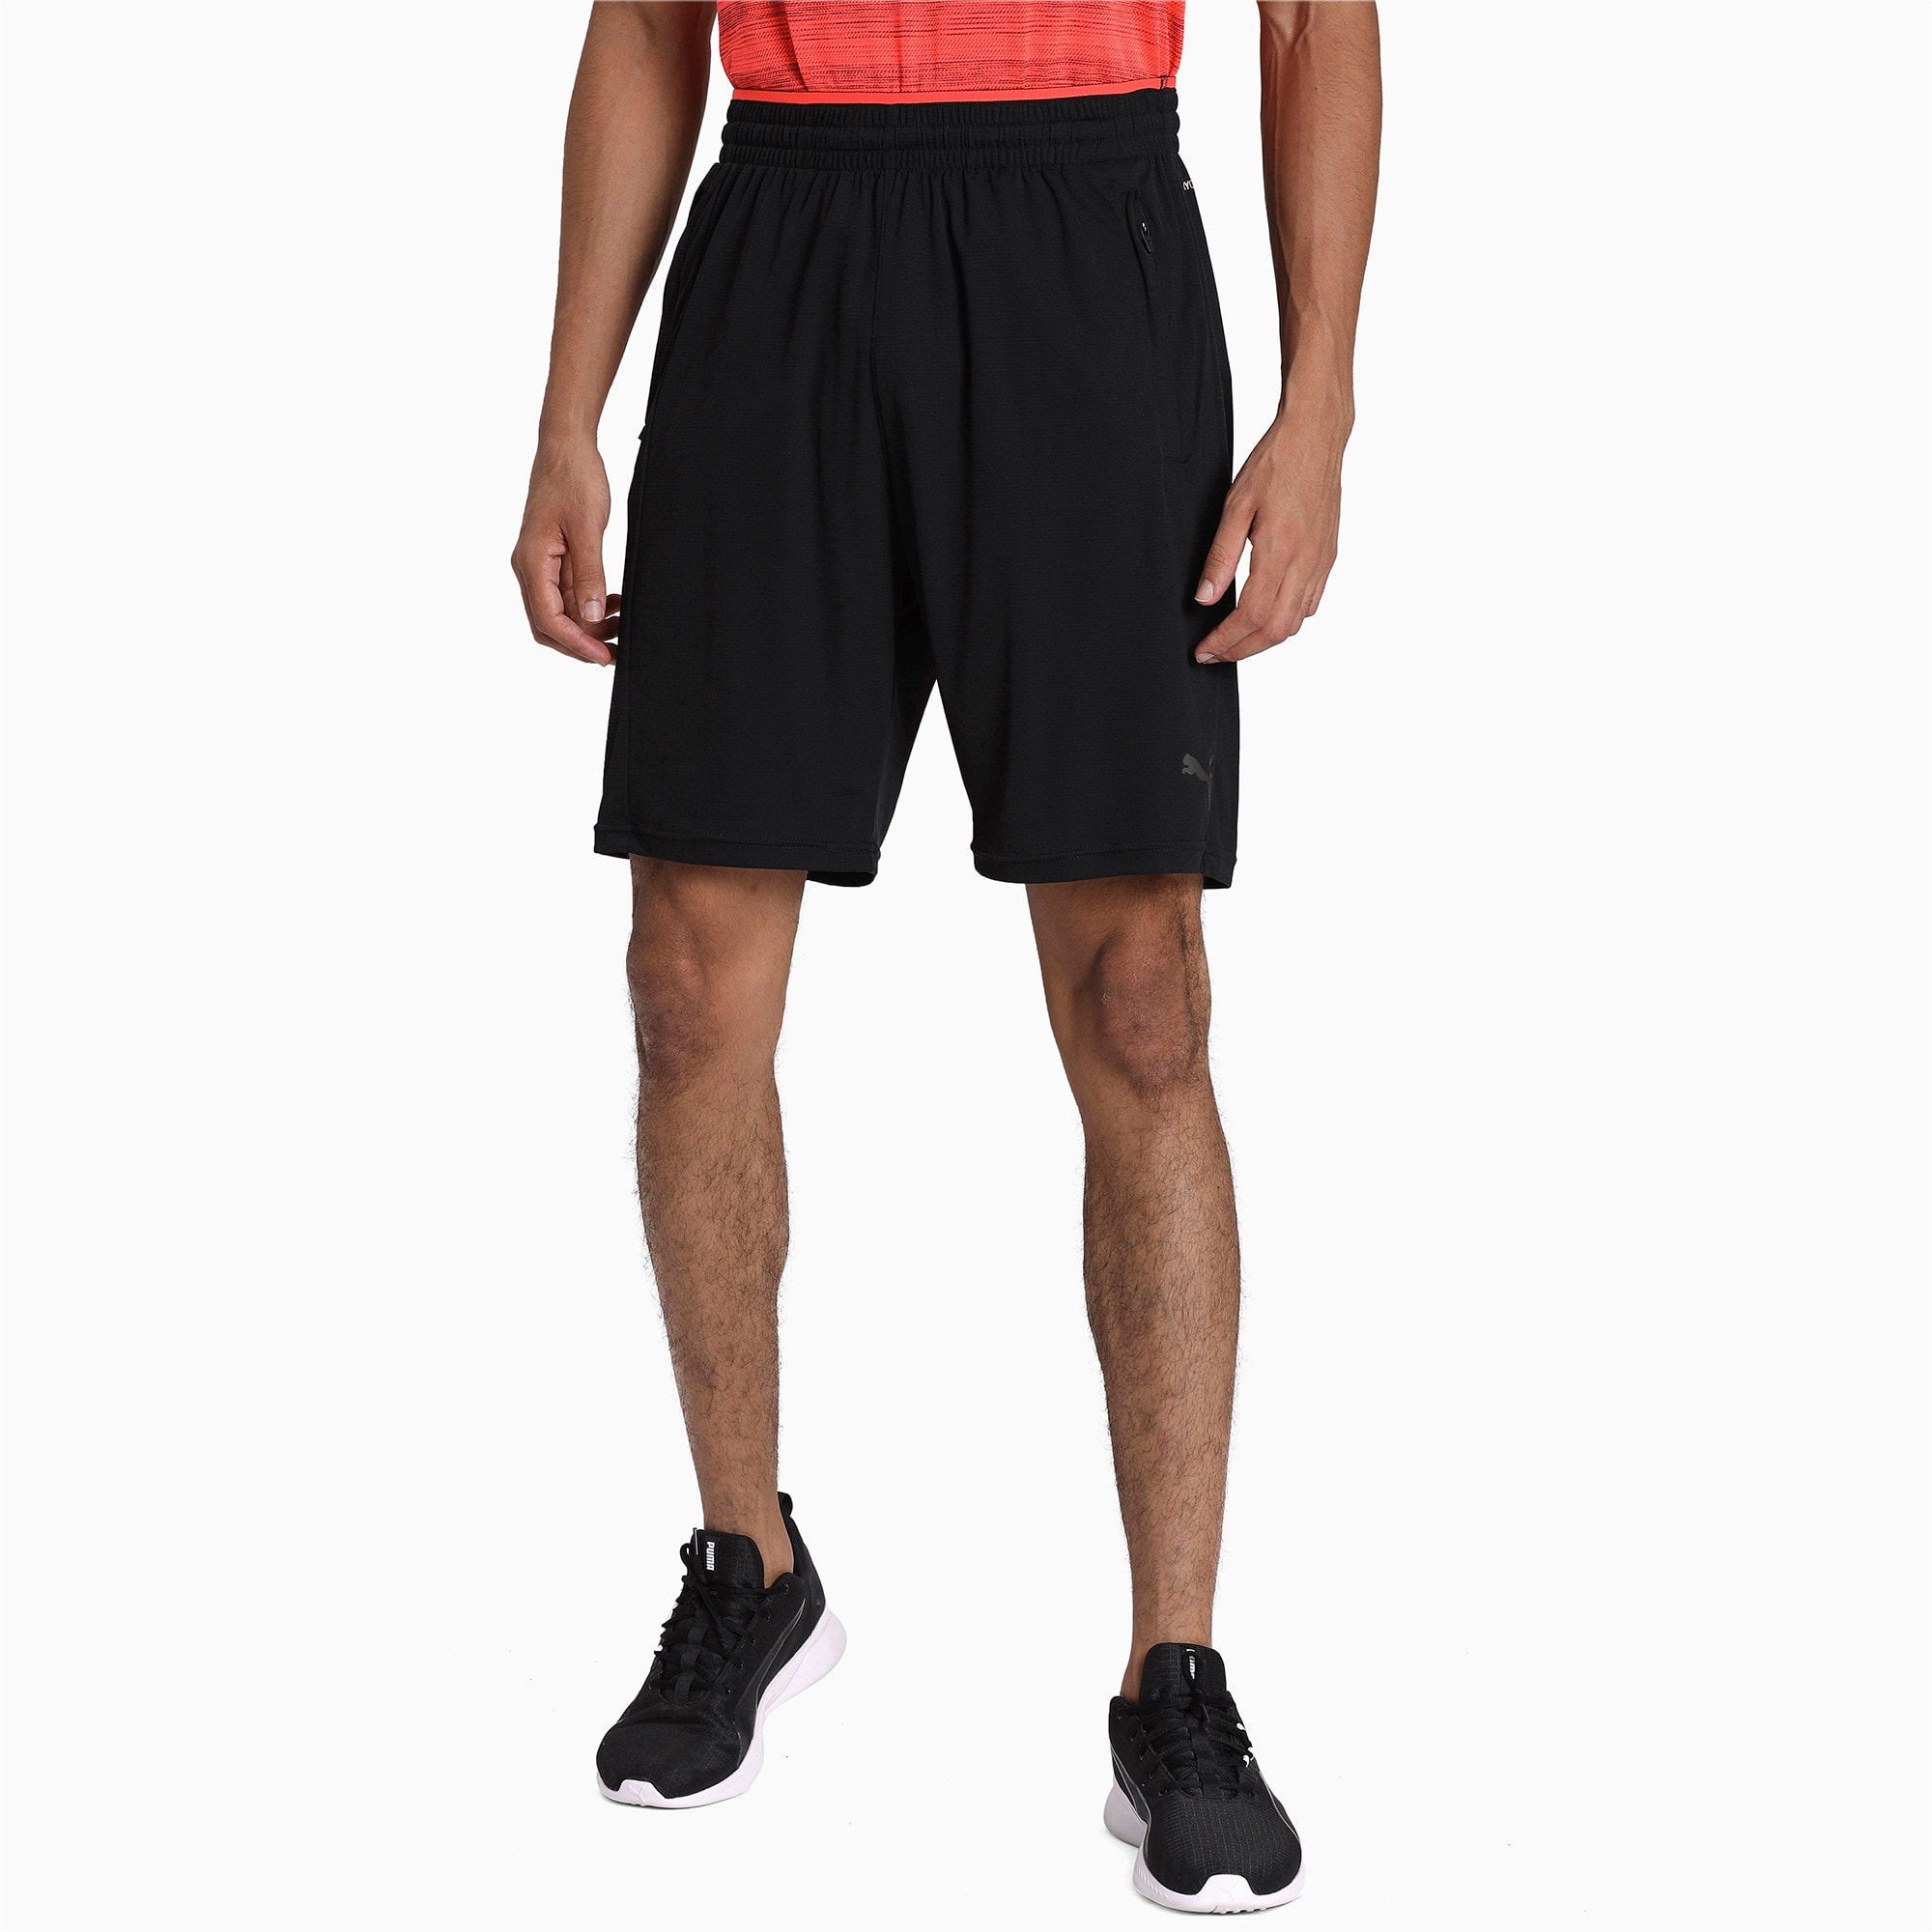 Thumbnail 1 of Collective Knitted Men's Training Shorts, Puma Black-Nrgy Red, medium-IND